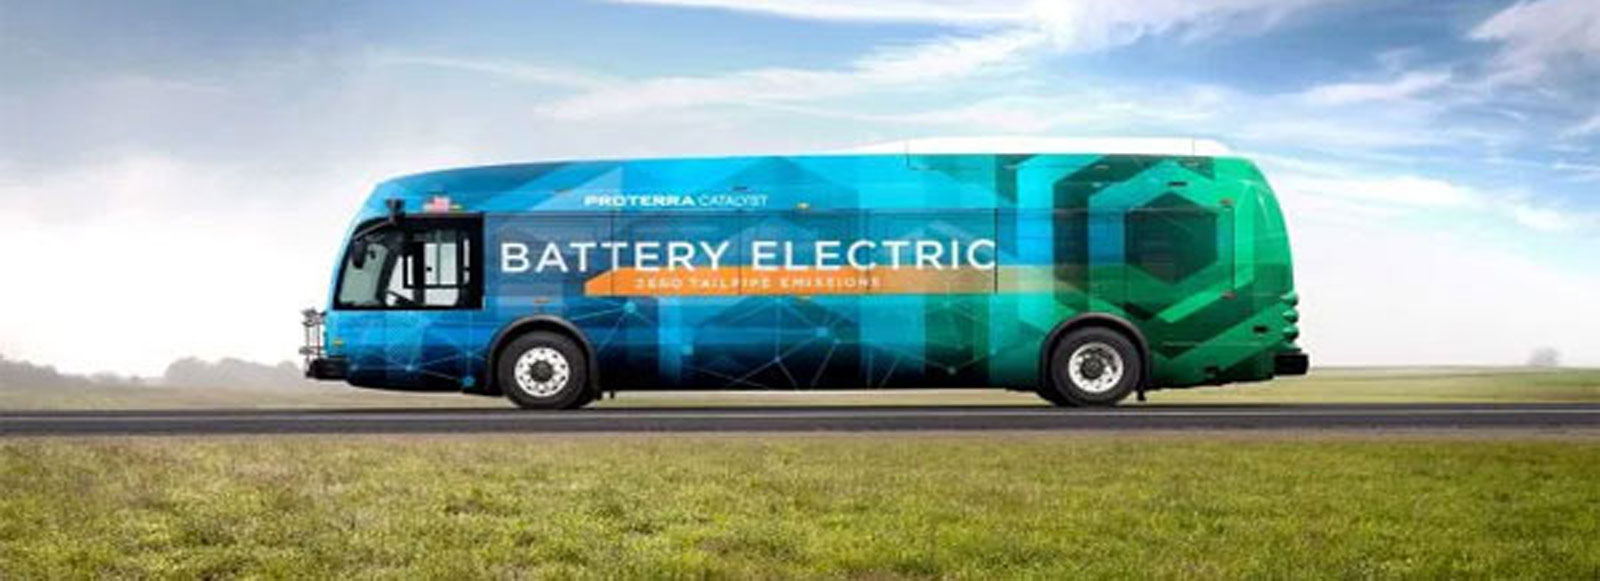 Proterra Electrical Buses